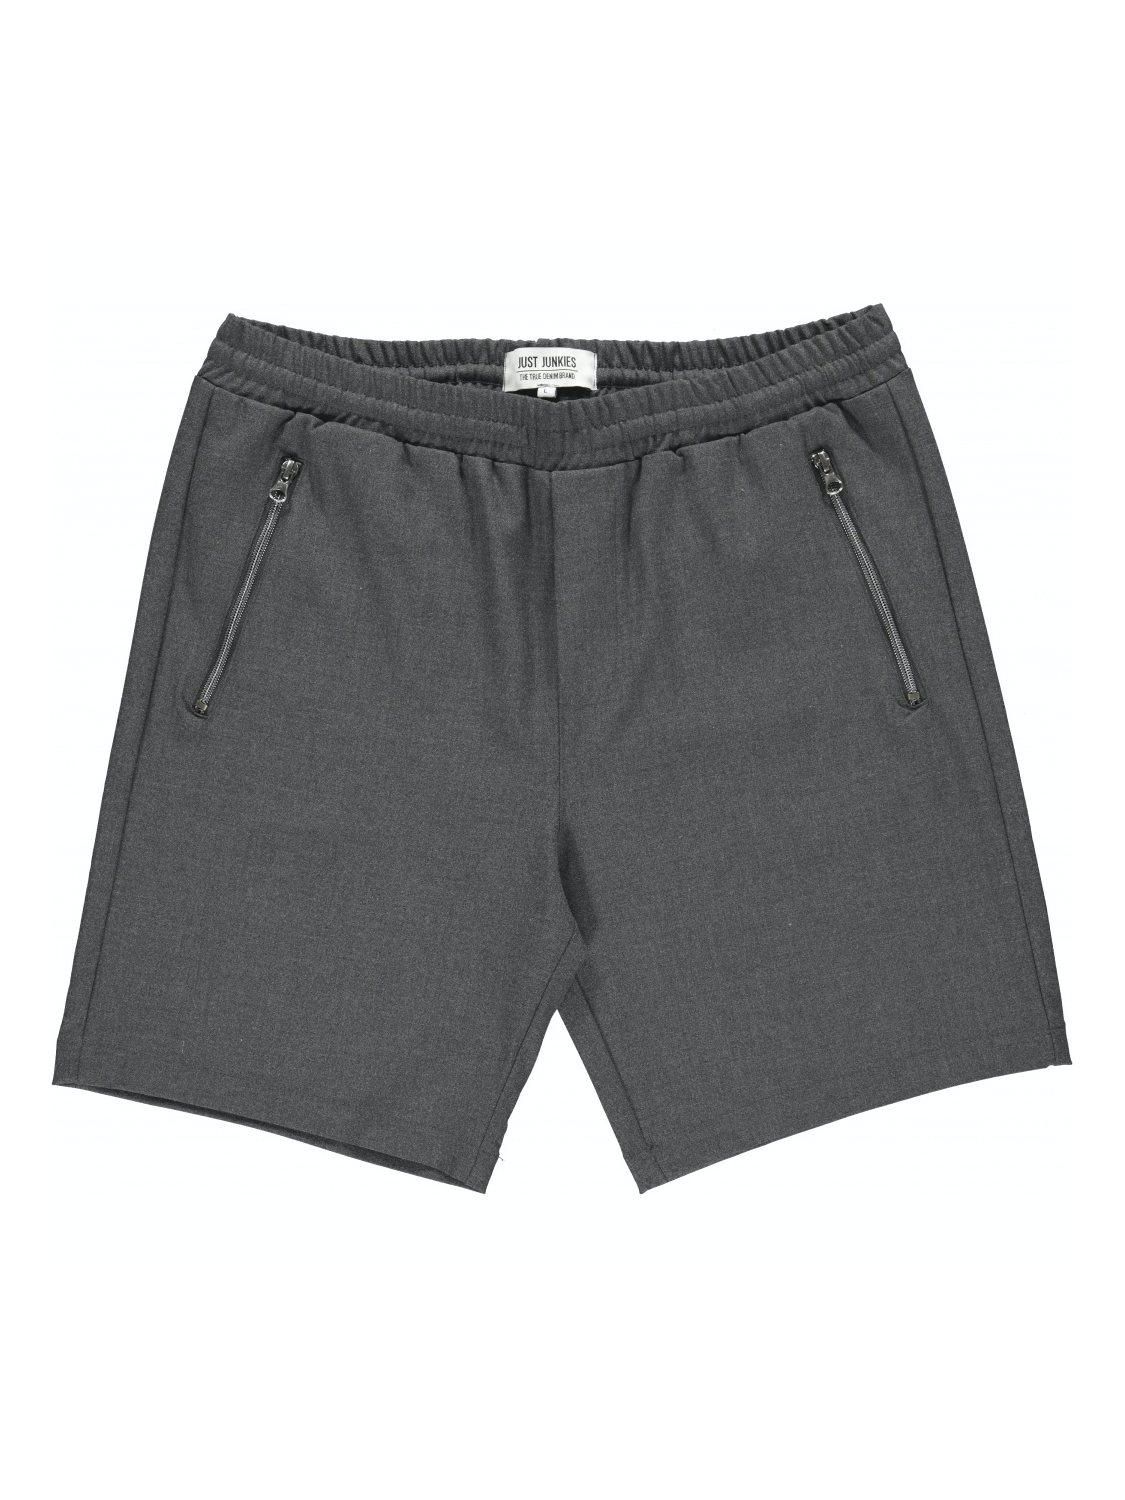 Just Junkies - shorts Flex 2.0 GREY JJ1688 | GATE 36 Hobro